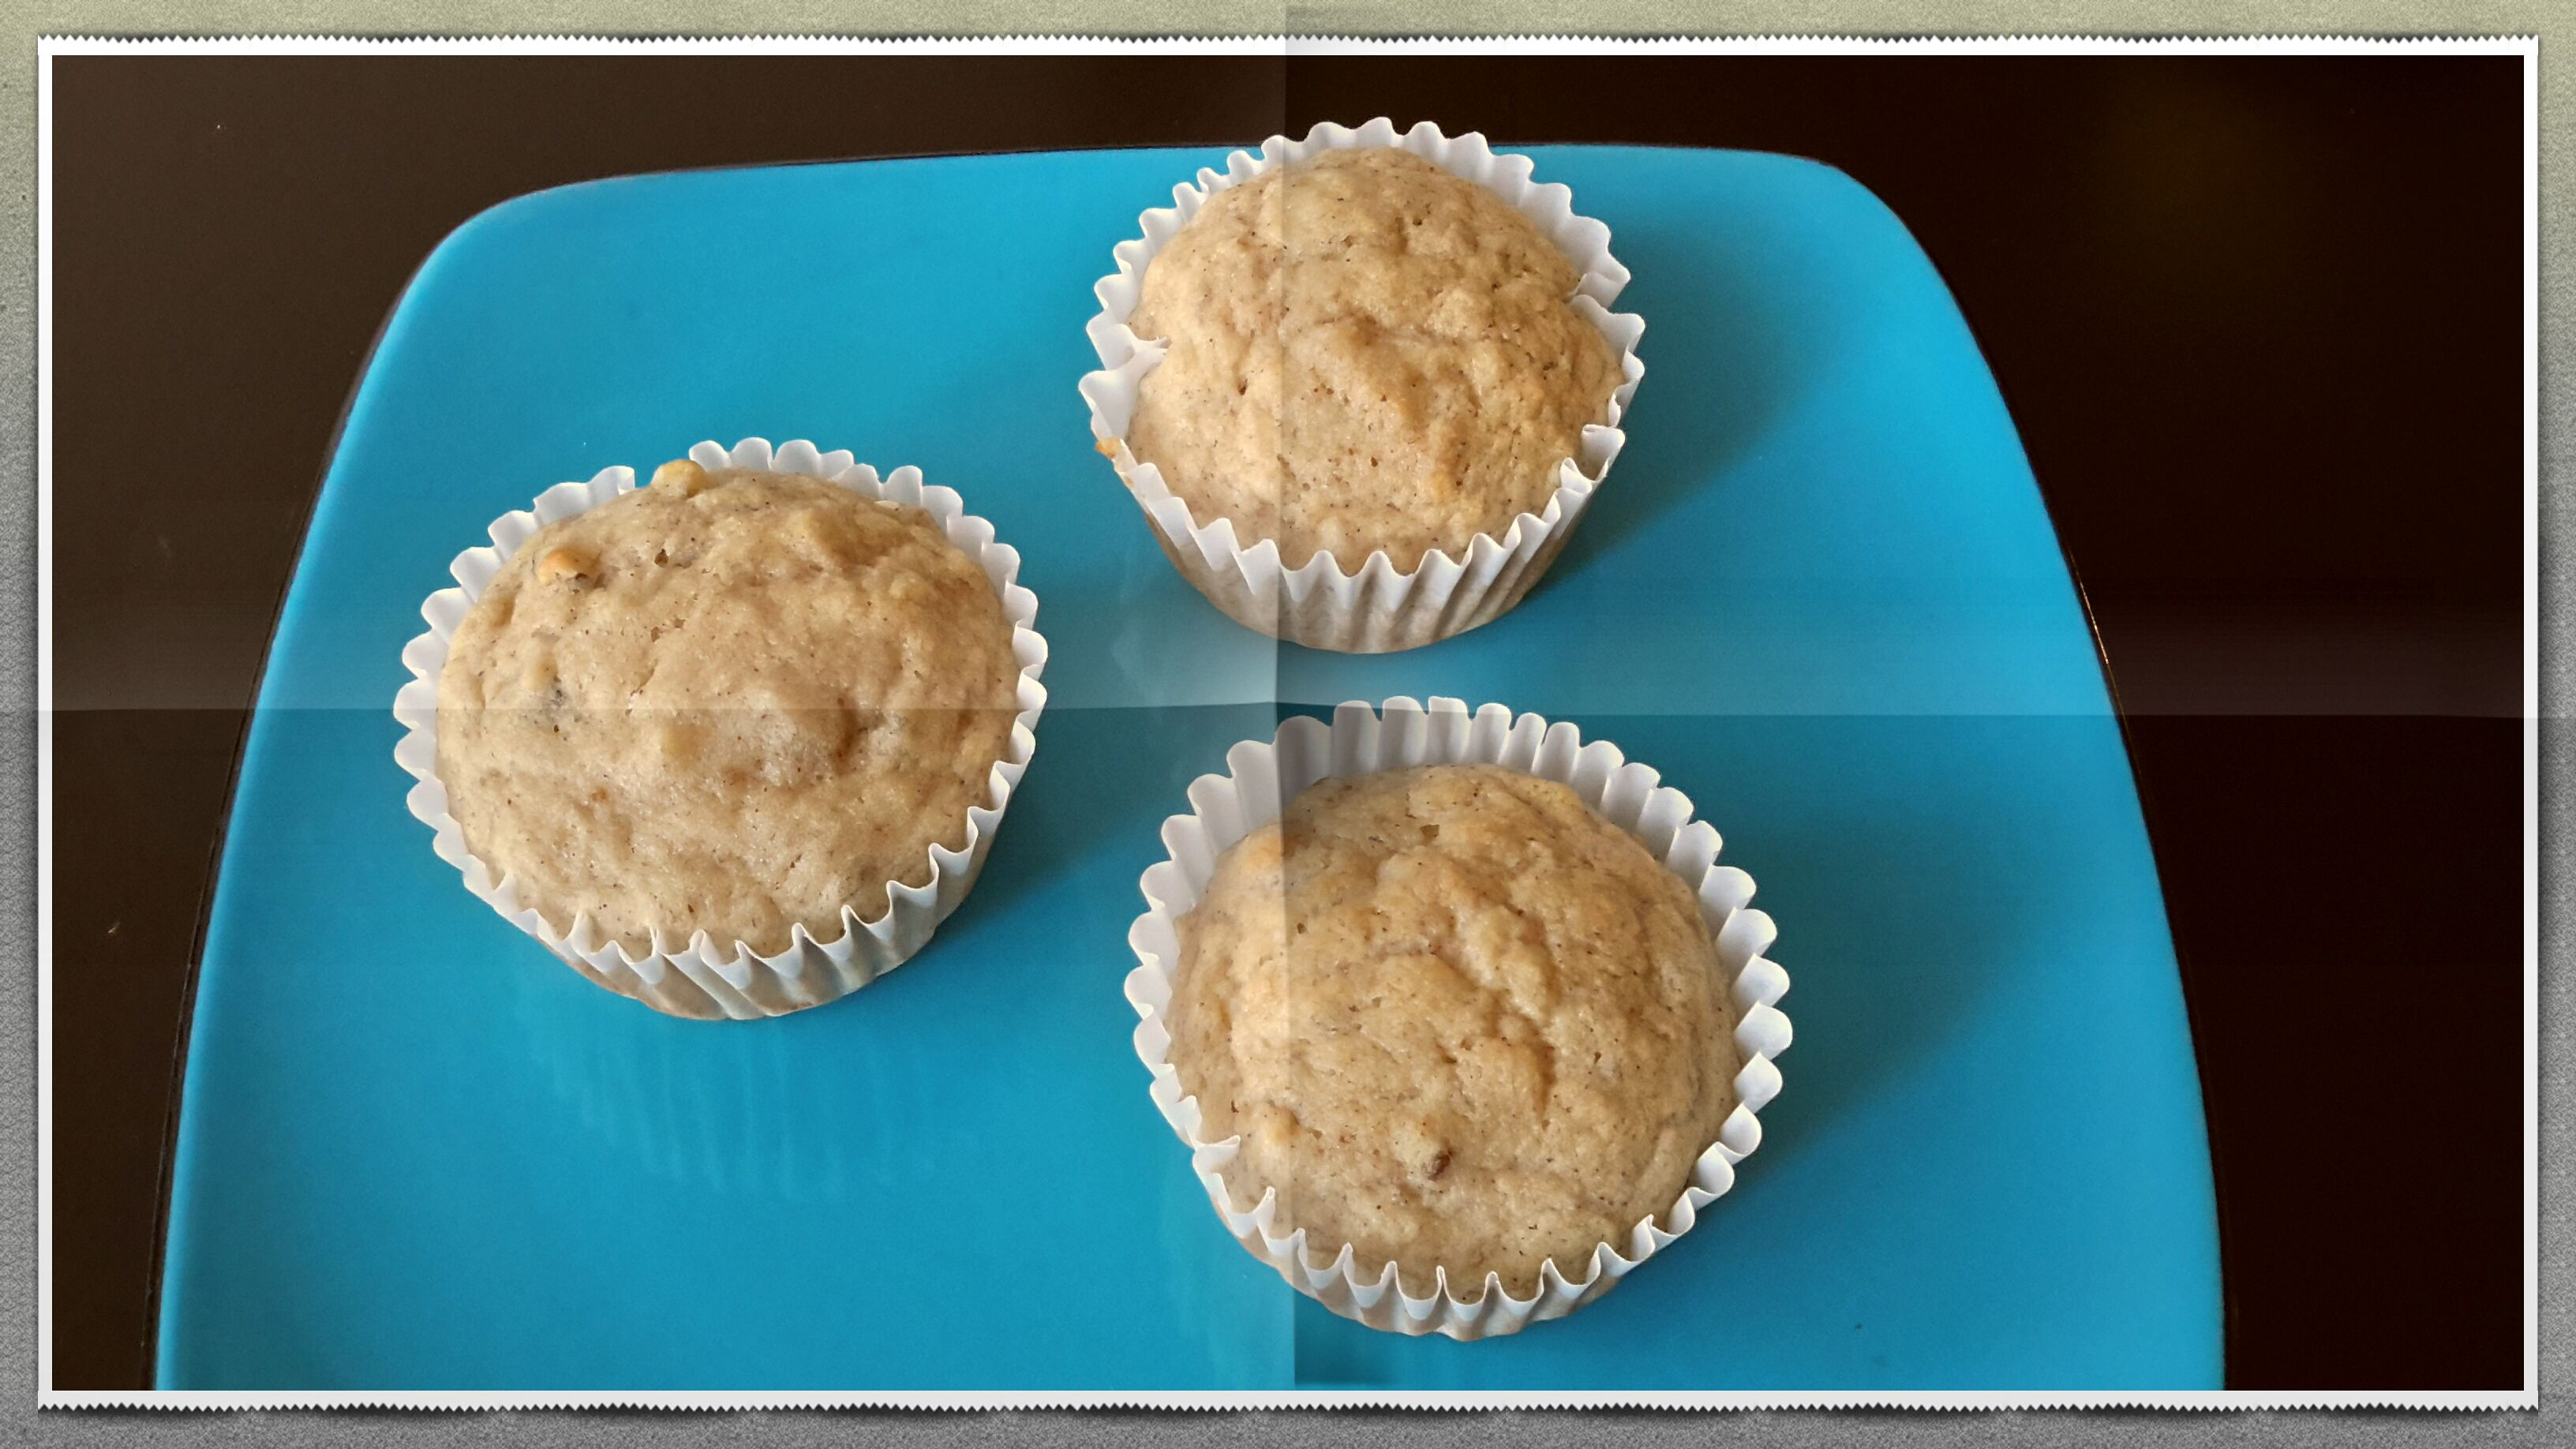 Gluten Free Banana Walnut Muffin Recipe | Kitchen Aid Mixer ...